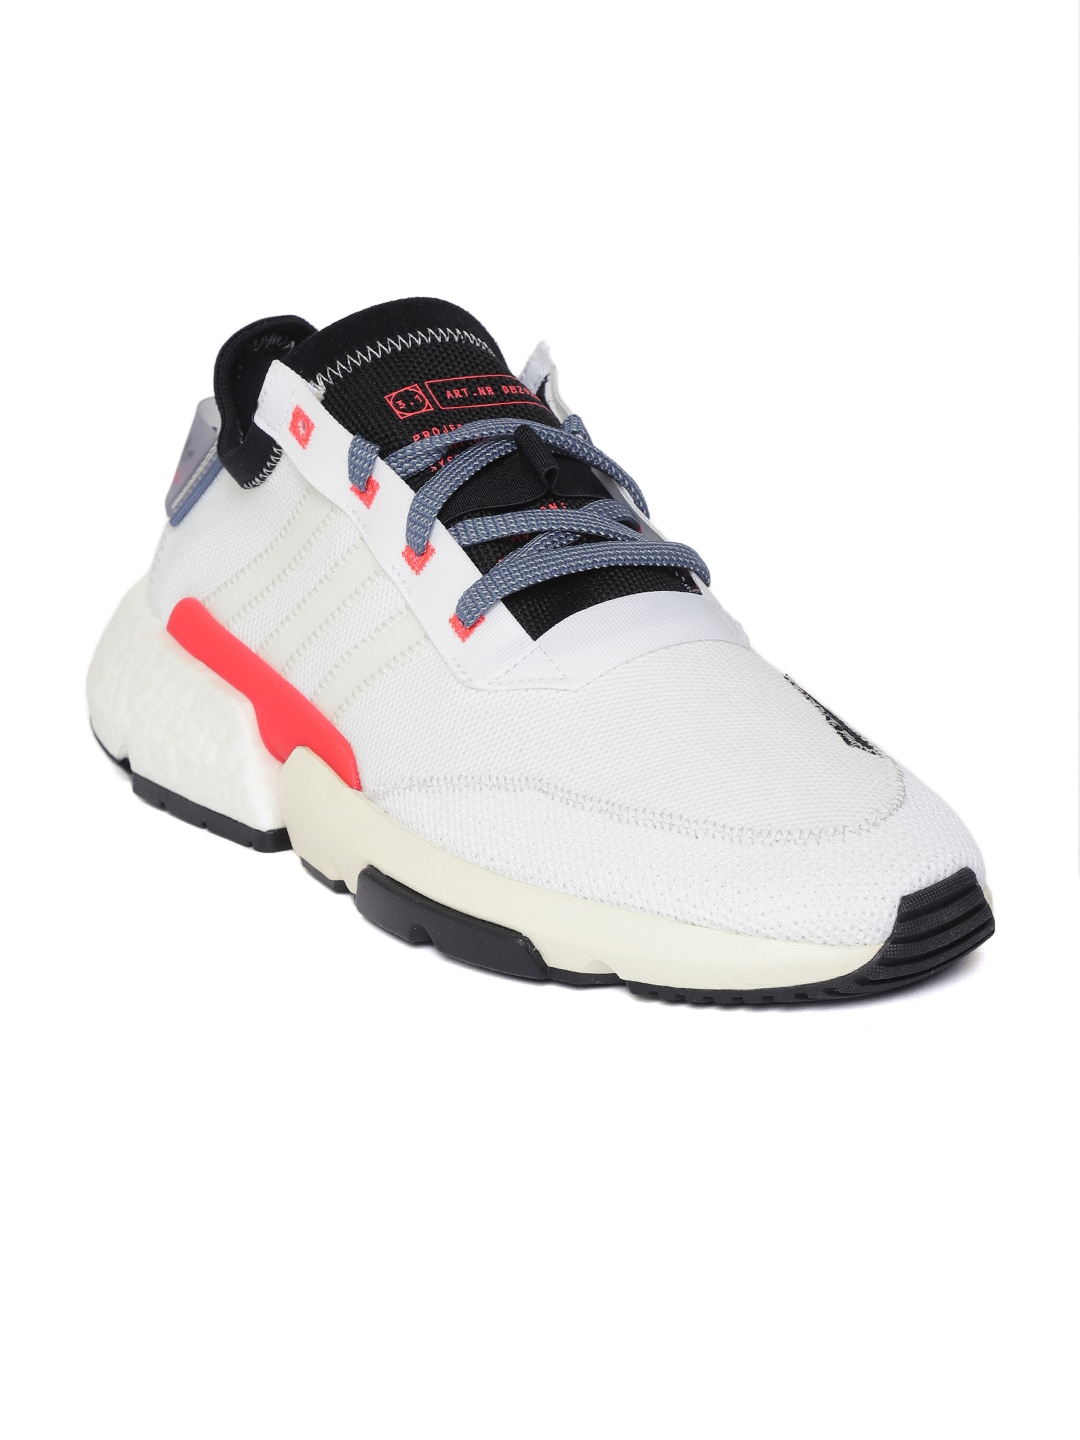 buy popular 8280e 707ed Adidas Shoes - Buy Adidas Shoes for Men   Women Online - Myntra